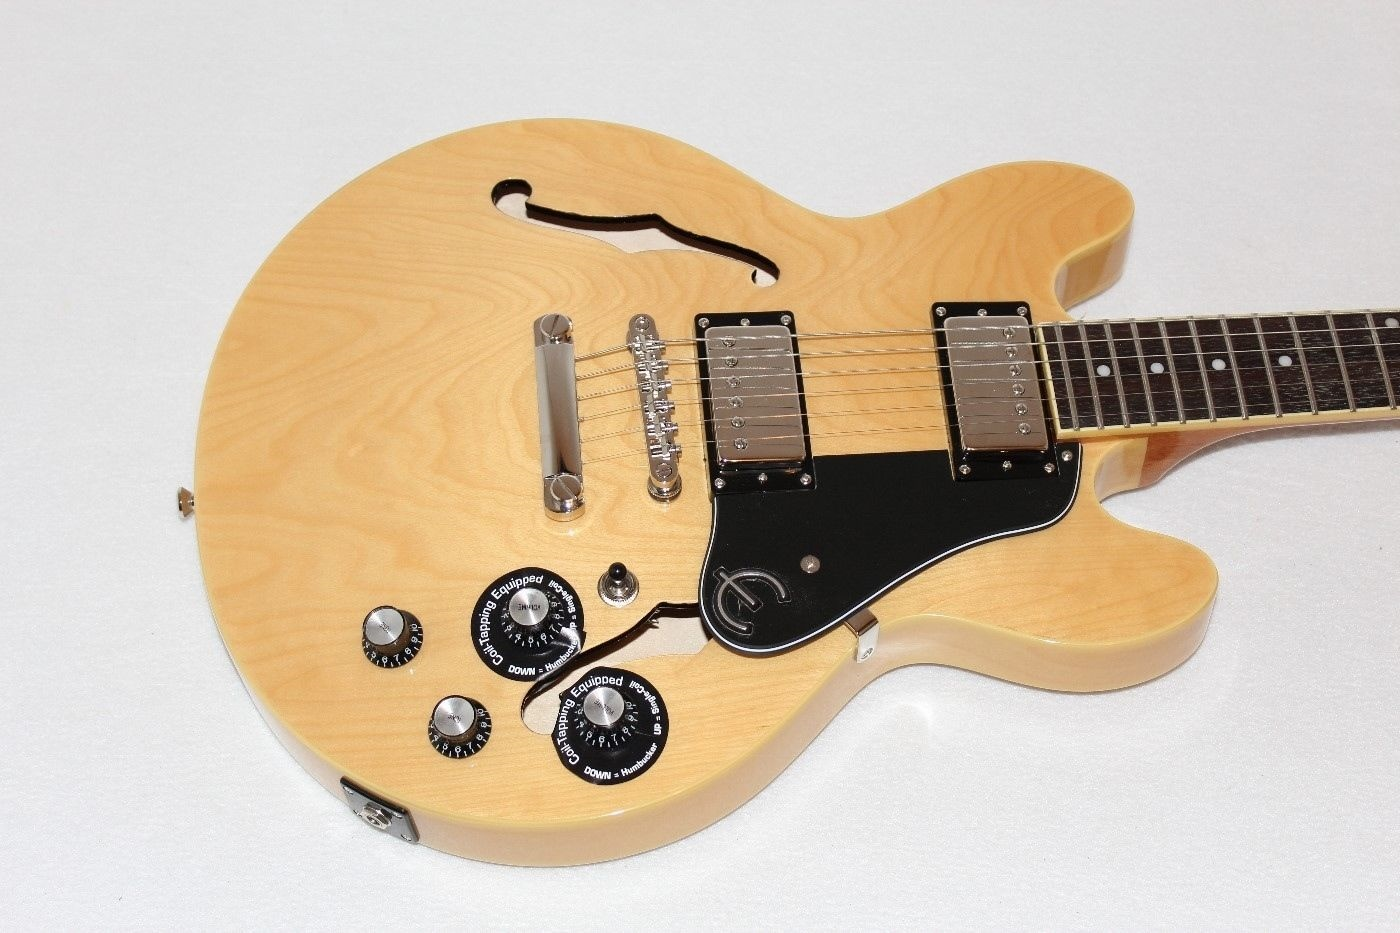 epiphone es 339 pro semi hollow body electric guitar ebay. Black Bedroom Furniture Sets. Home Design Ideas